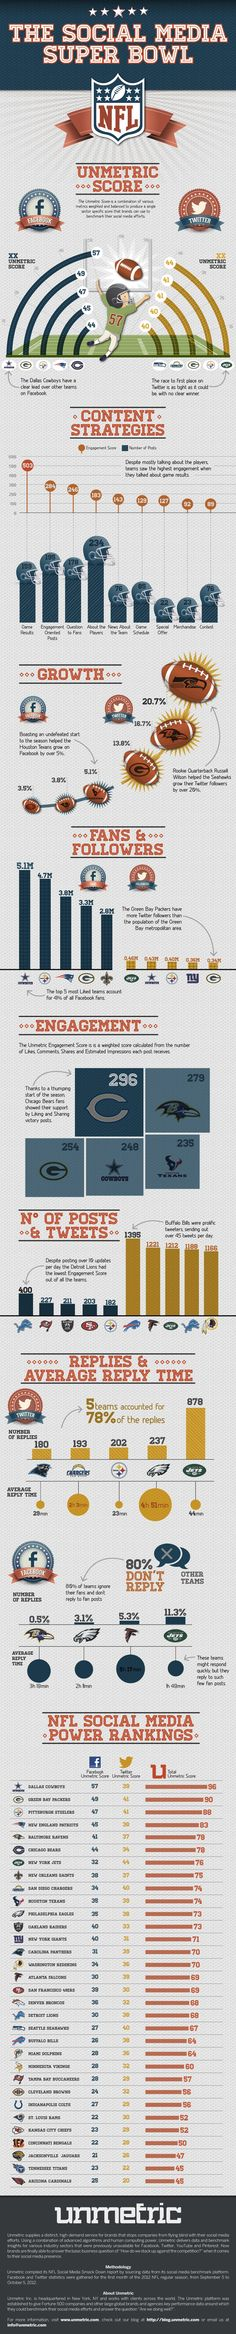 Dallas Cowboys are NFL Champs! (on Facebook and Twitter that is). NFL UNMETRIC INFOGRAPHIC